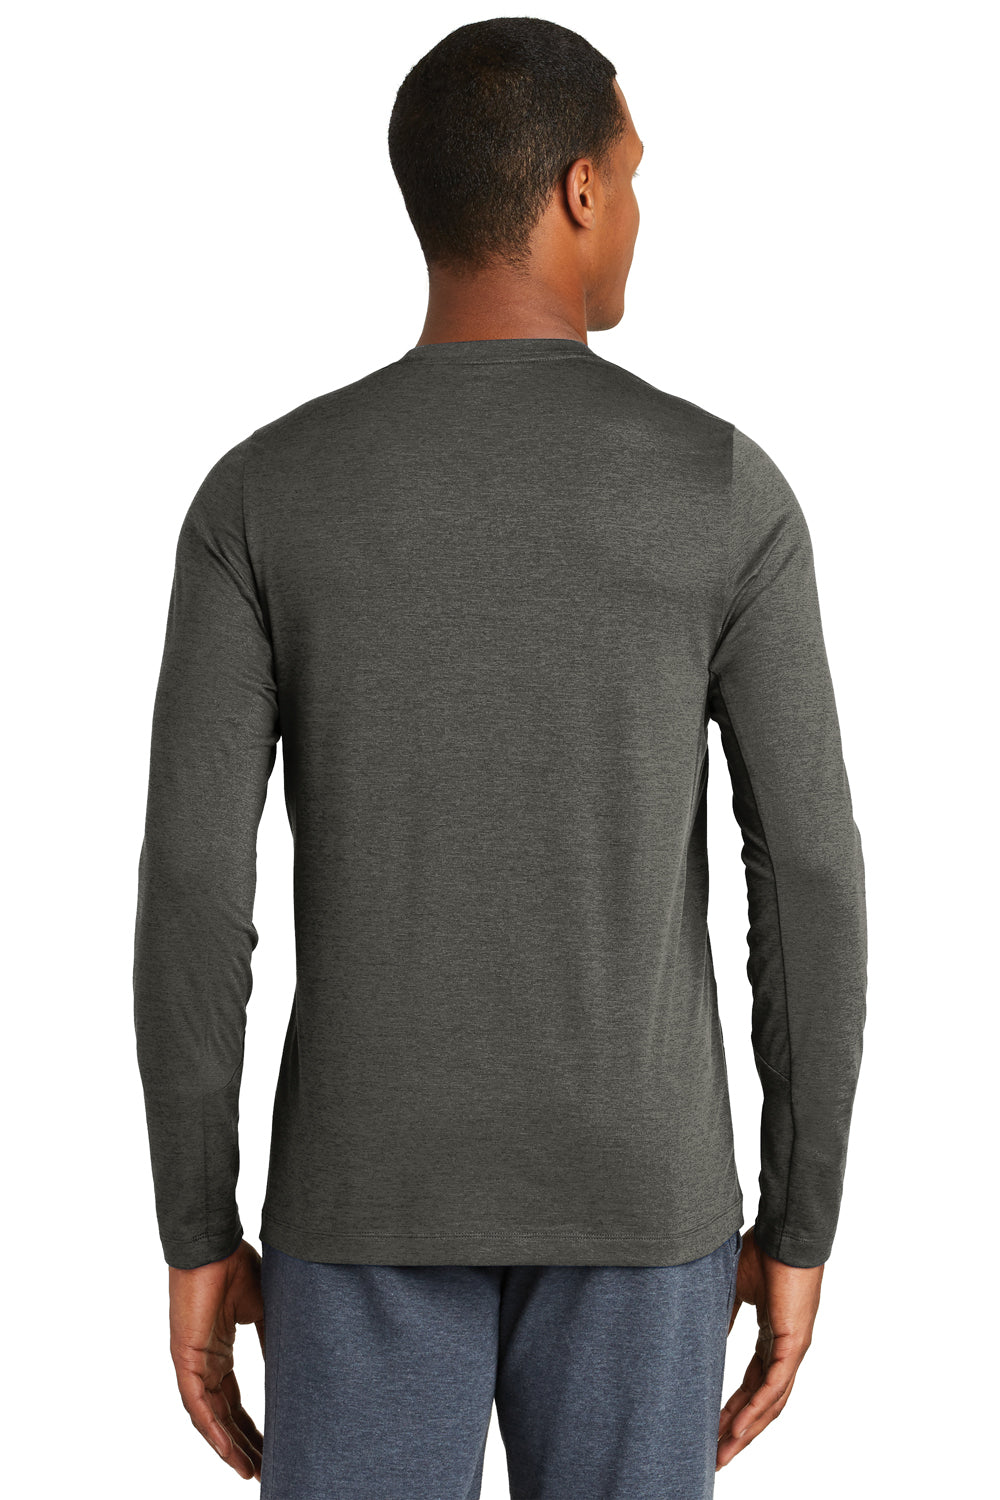 New Era NEA201 Mens Series Performance Moisture Wicking Long Sleeve Crewneck T-Shirt Graphite Grey Back